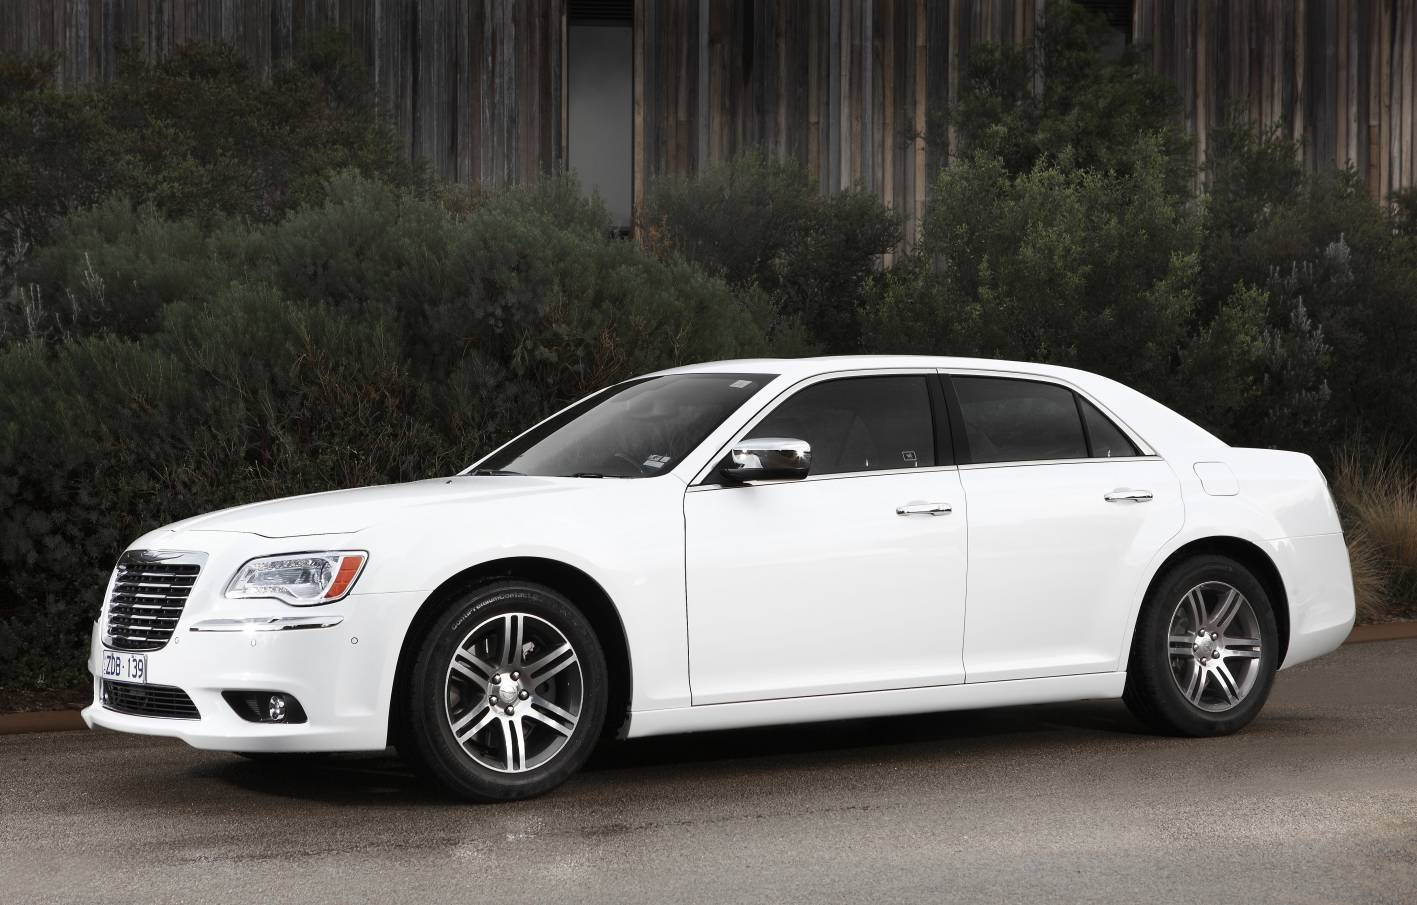 review 2012 chrysler 300 new car launch first drive. Black Bedroom Furniture Sets. Home Design Ideas